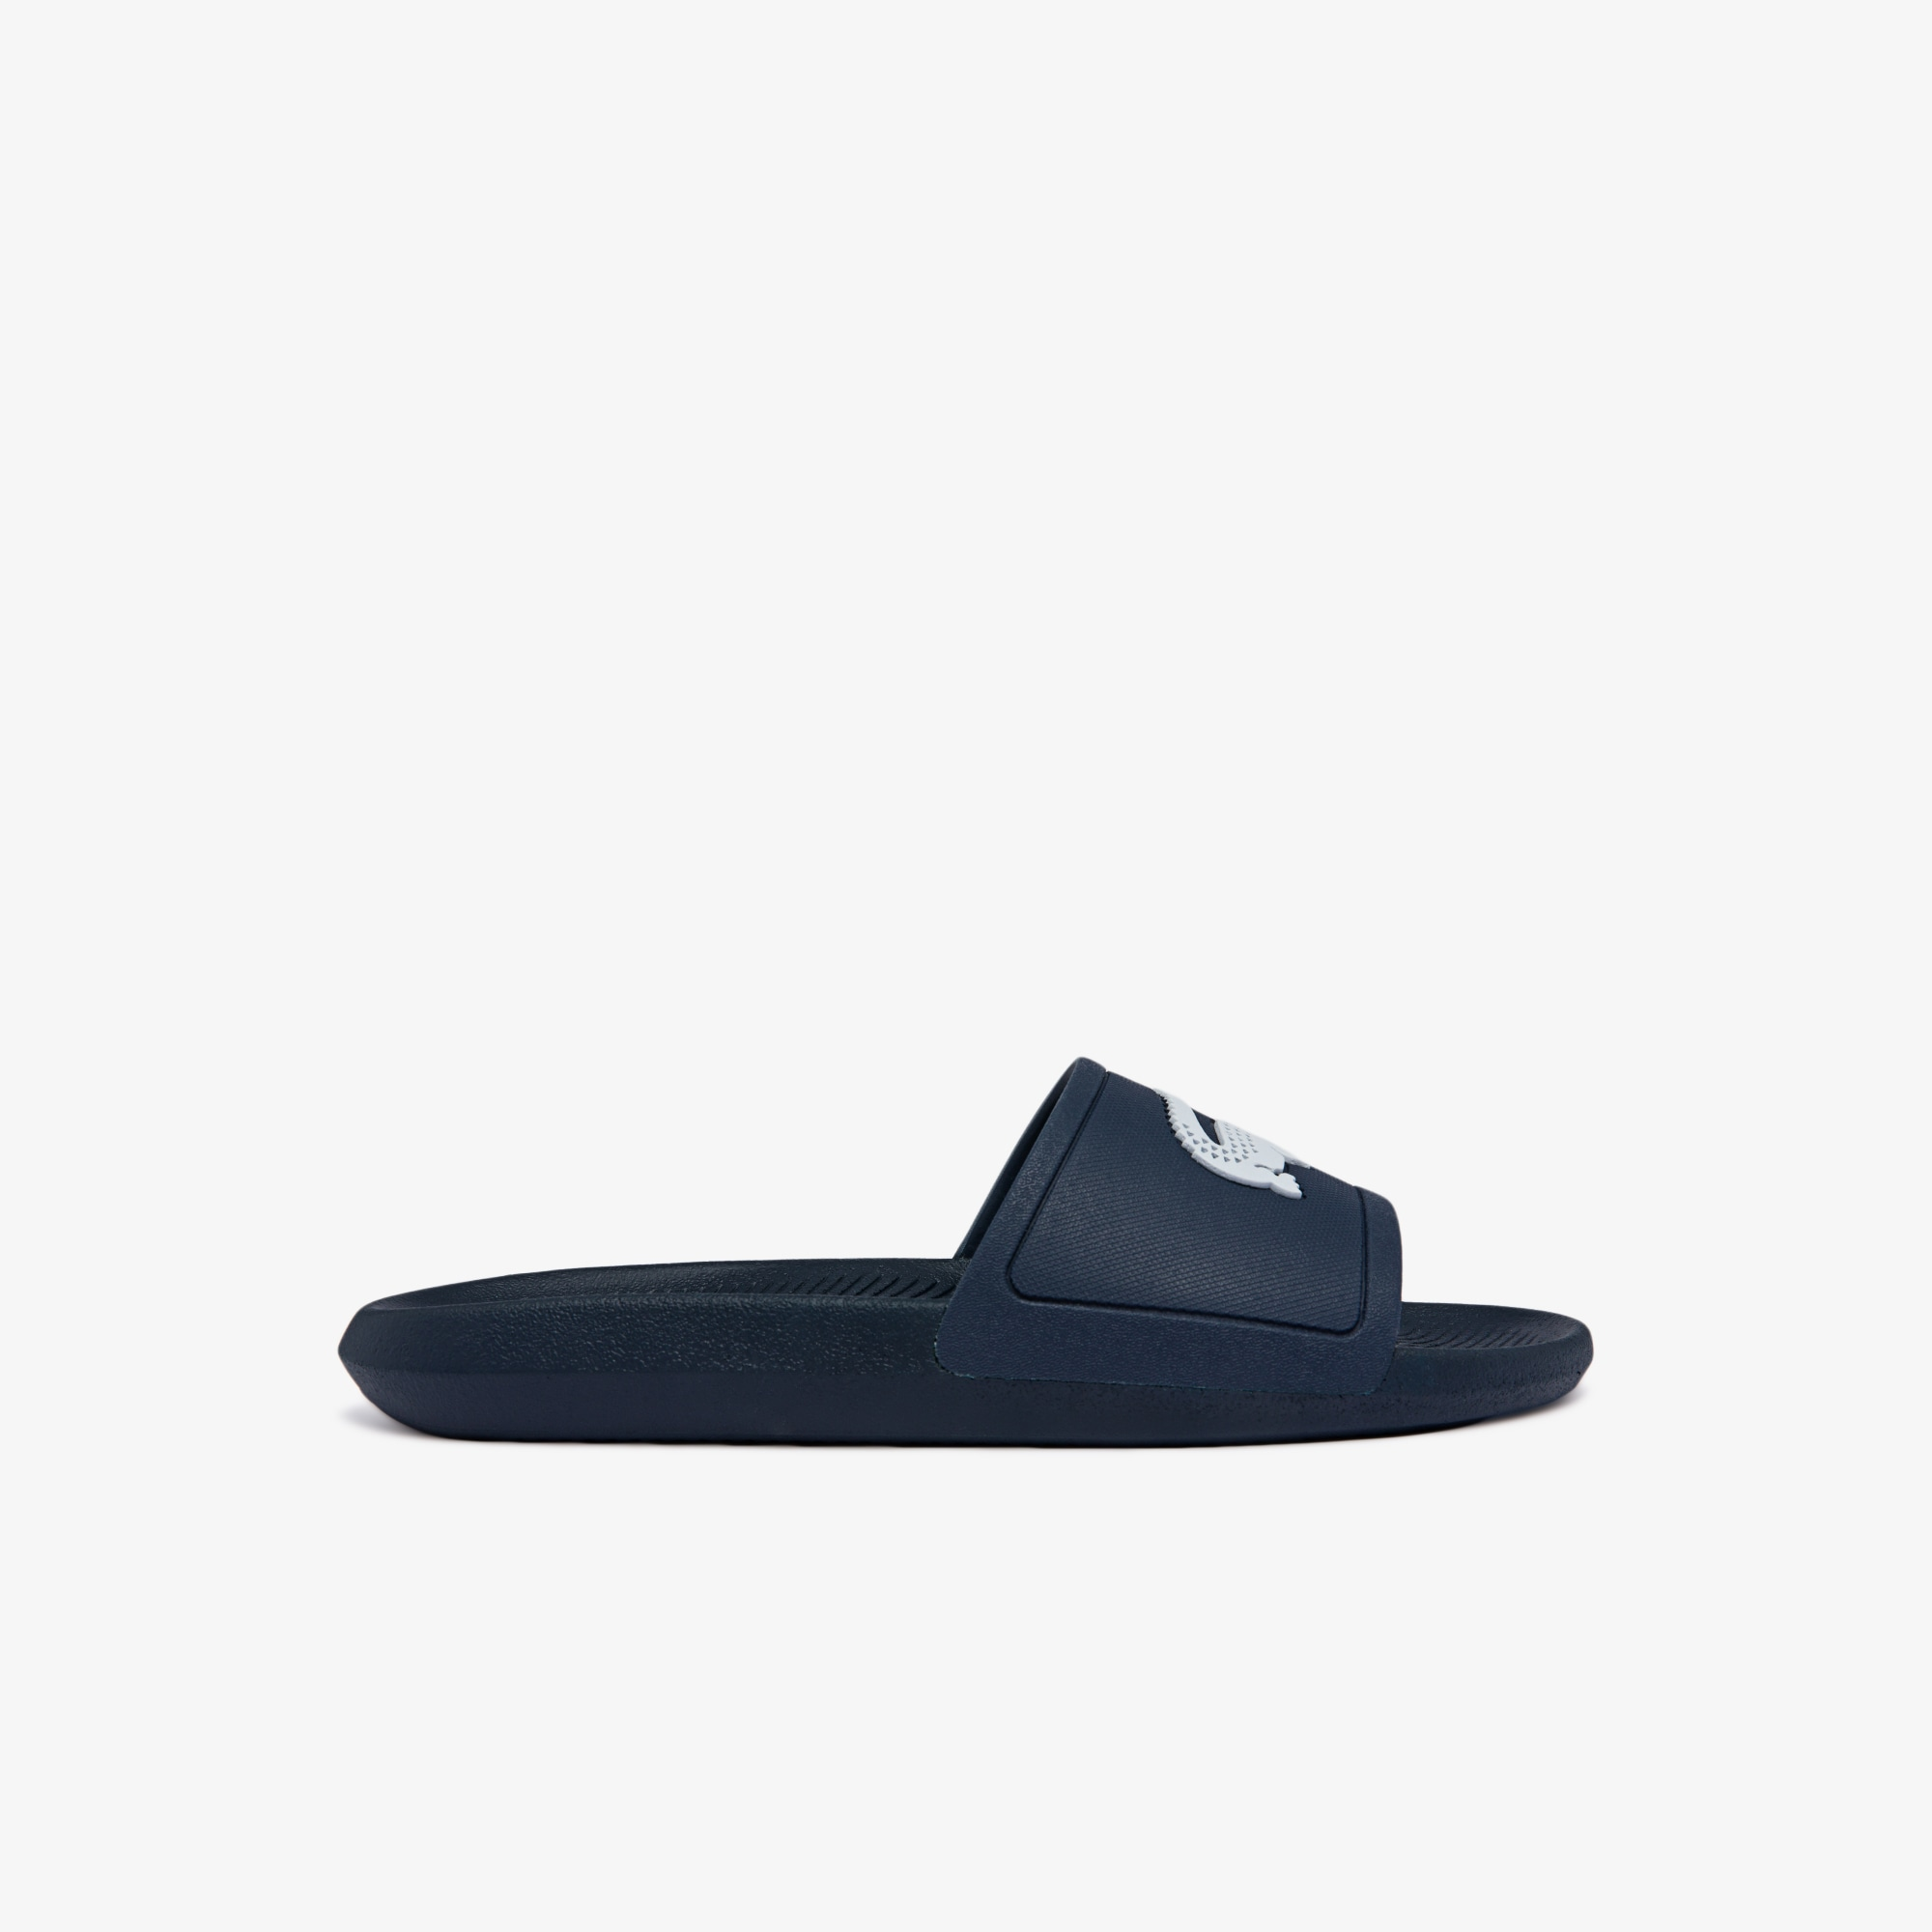 Men's Croco Slide Rubber Slides